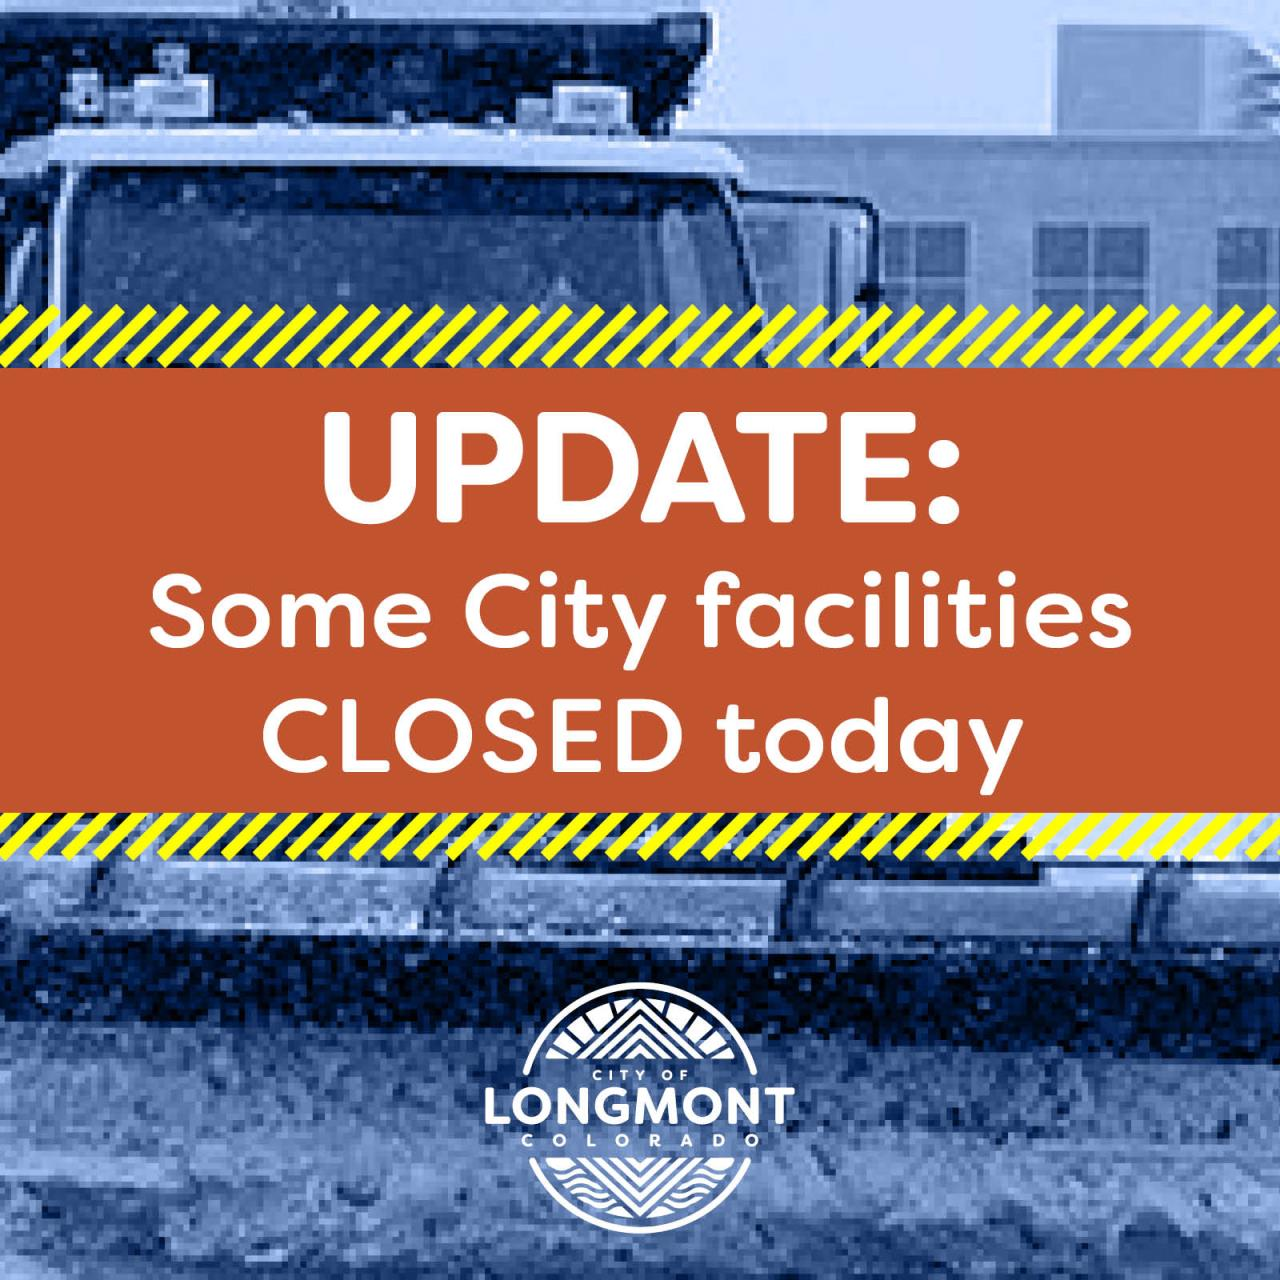 Update: Some City facilities CLOSED today